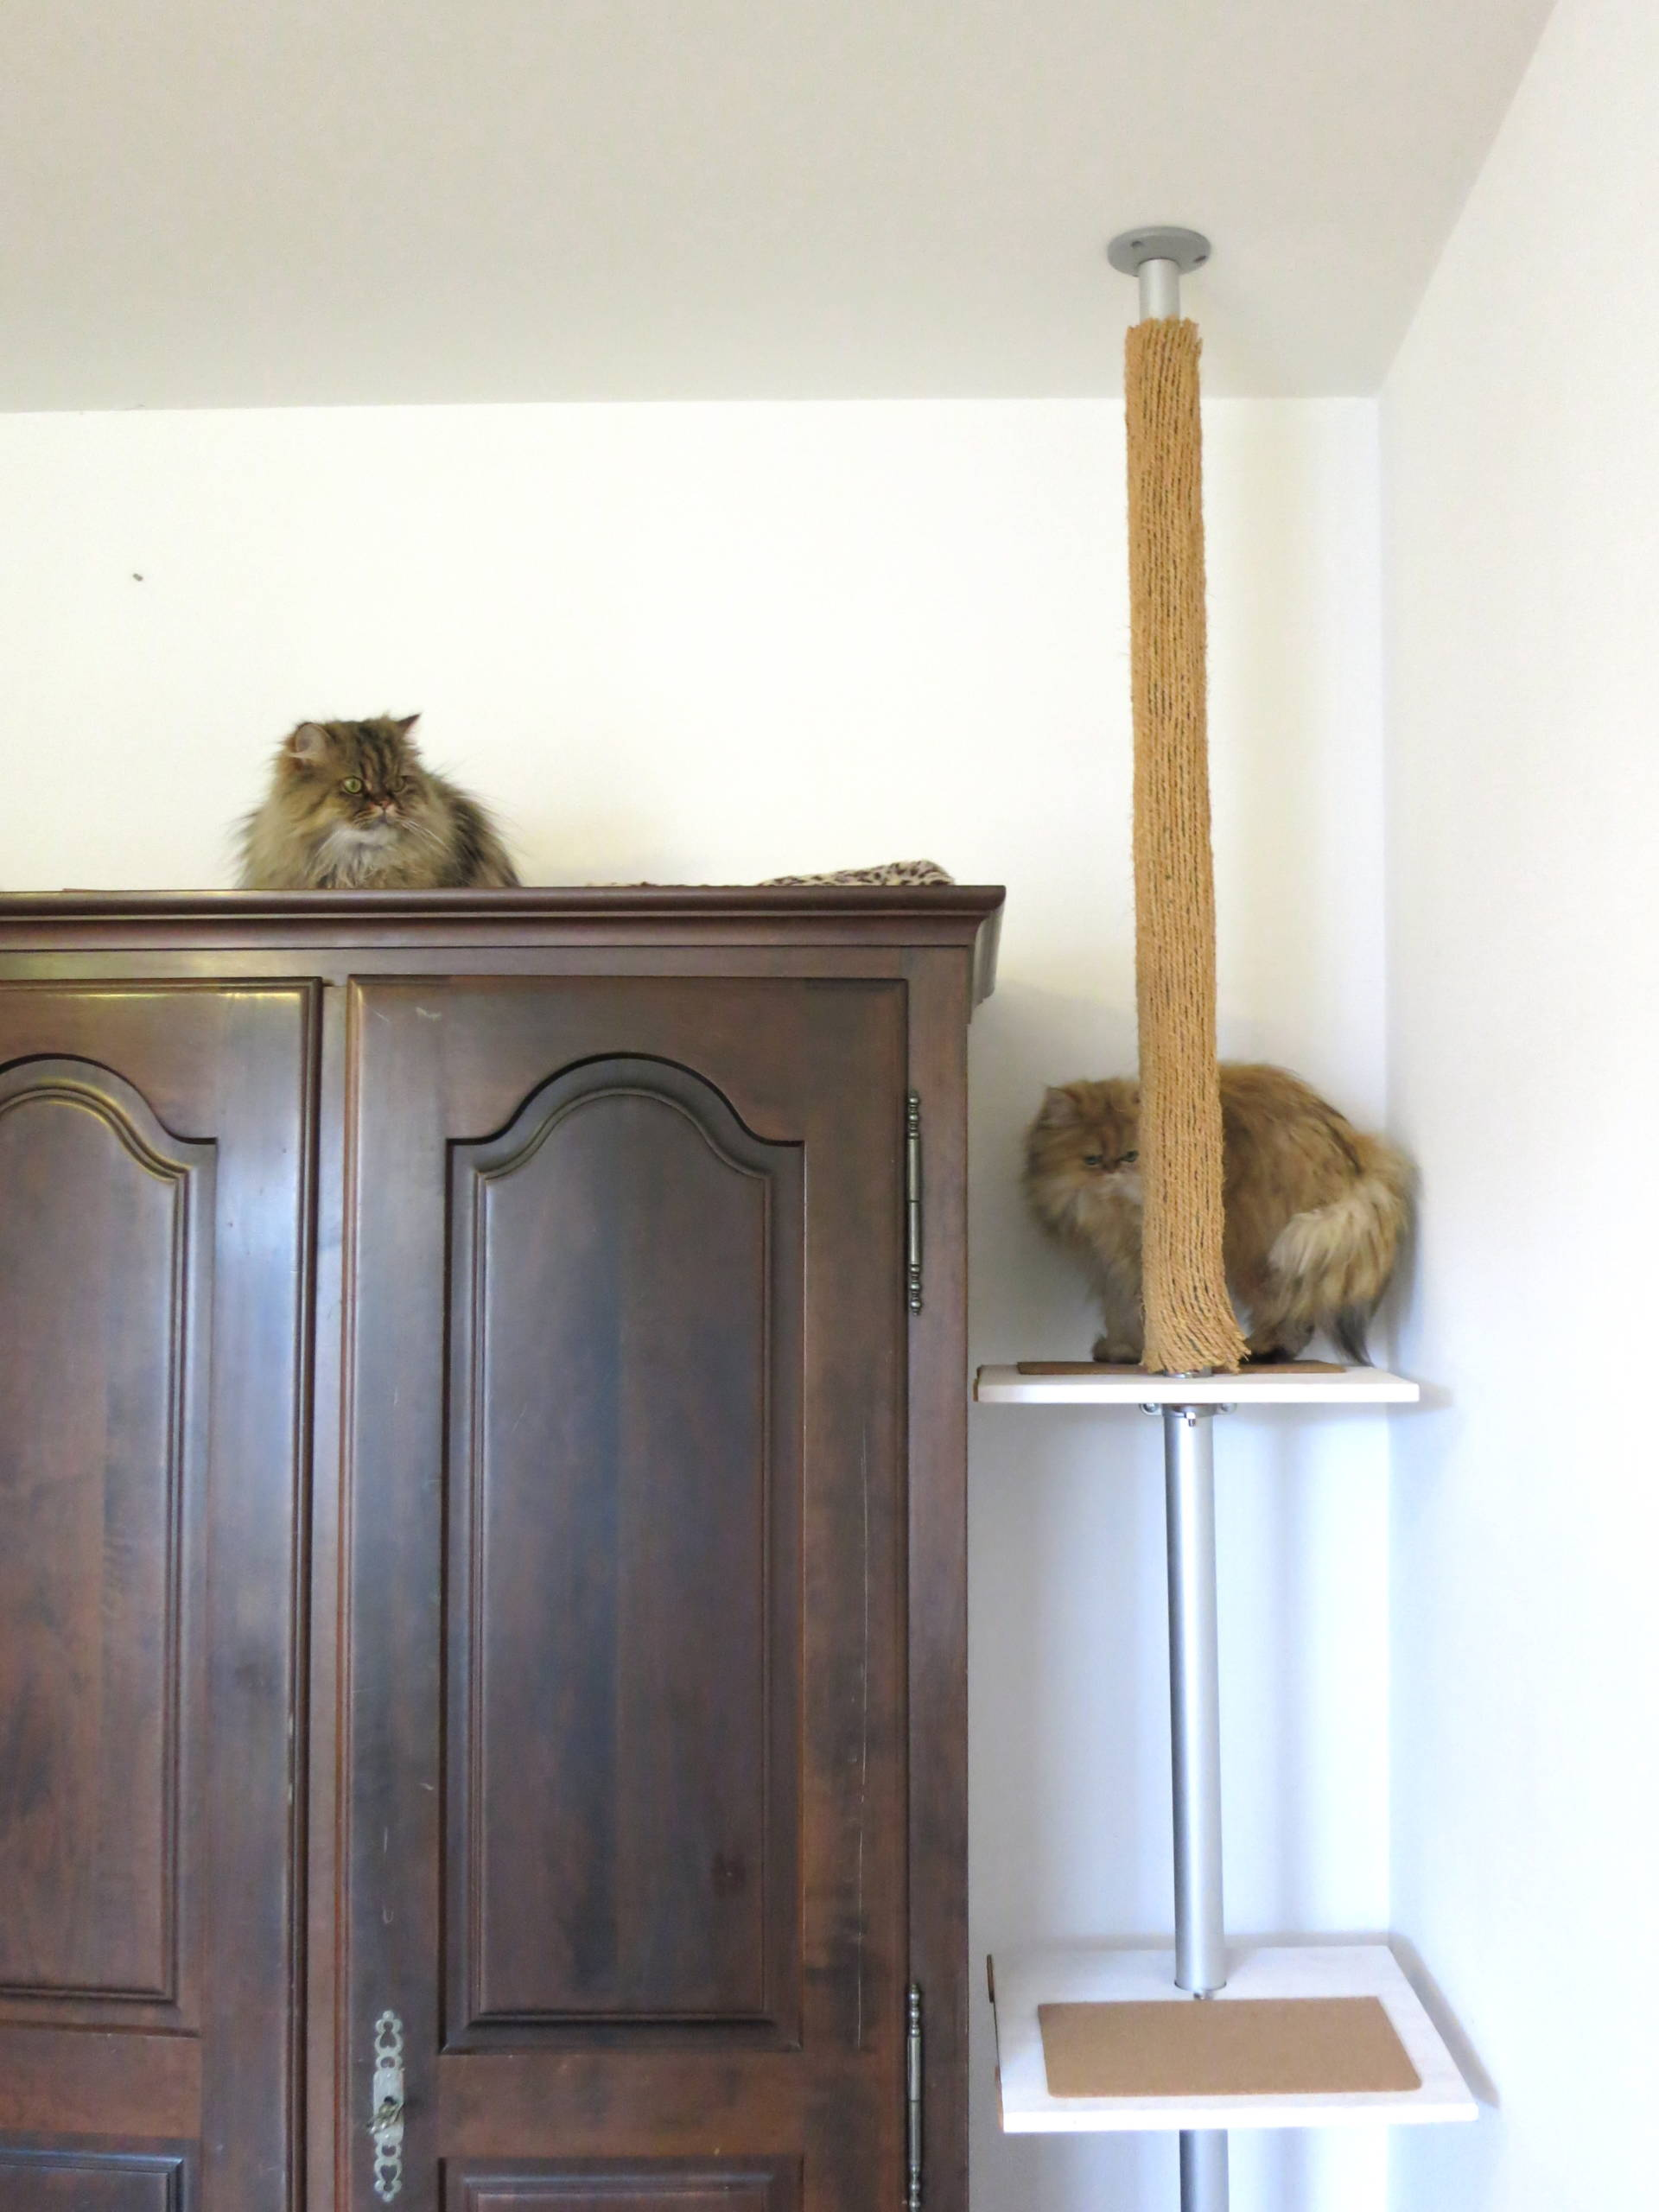 diy cat tower ikea easy craft ideas. Black Bedroom Furniture Sets. Home Design Ideas